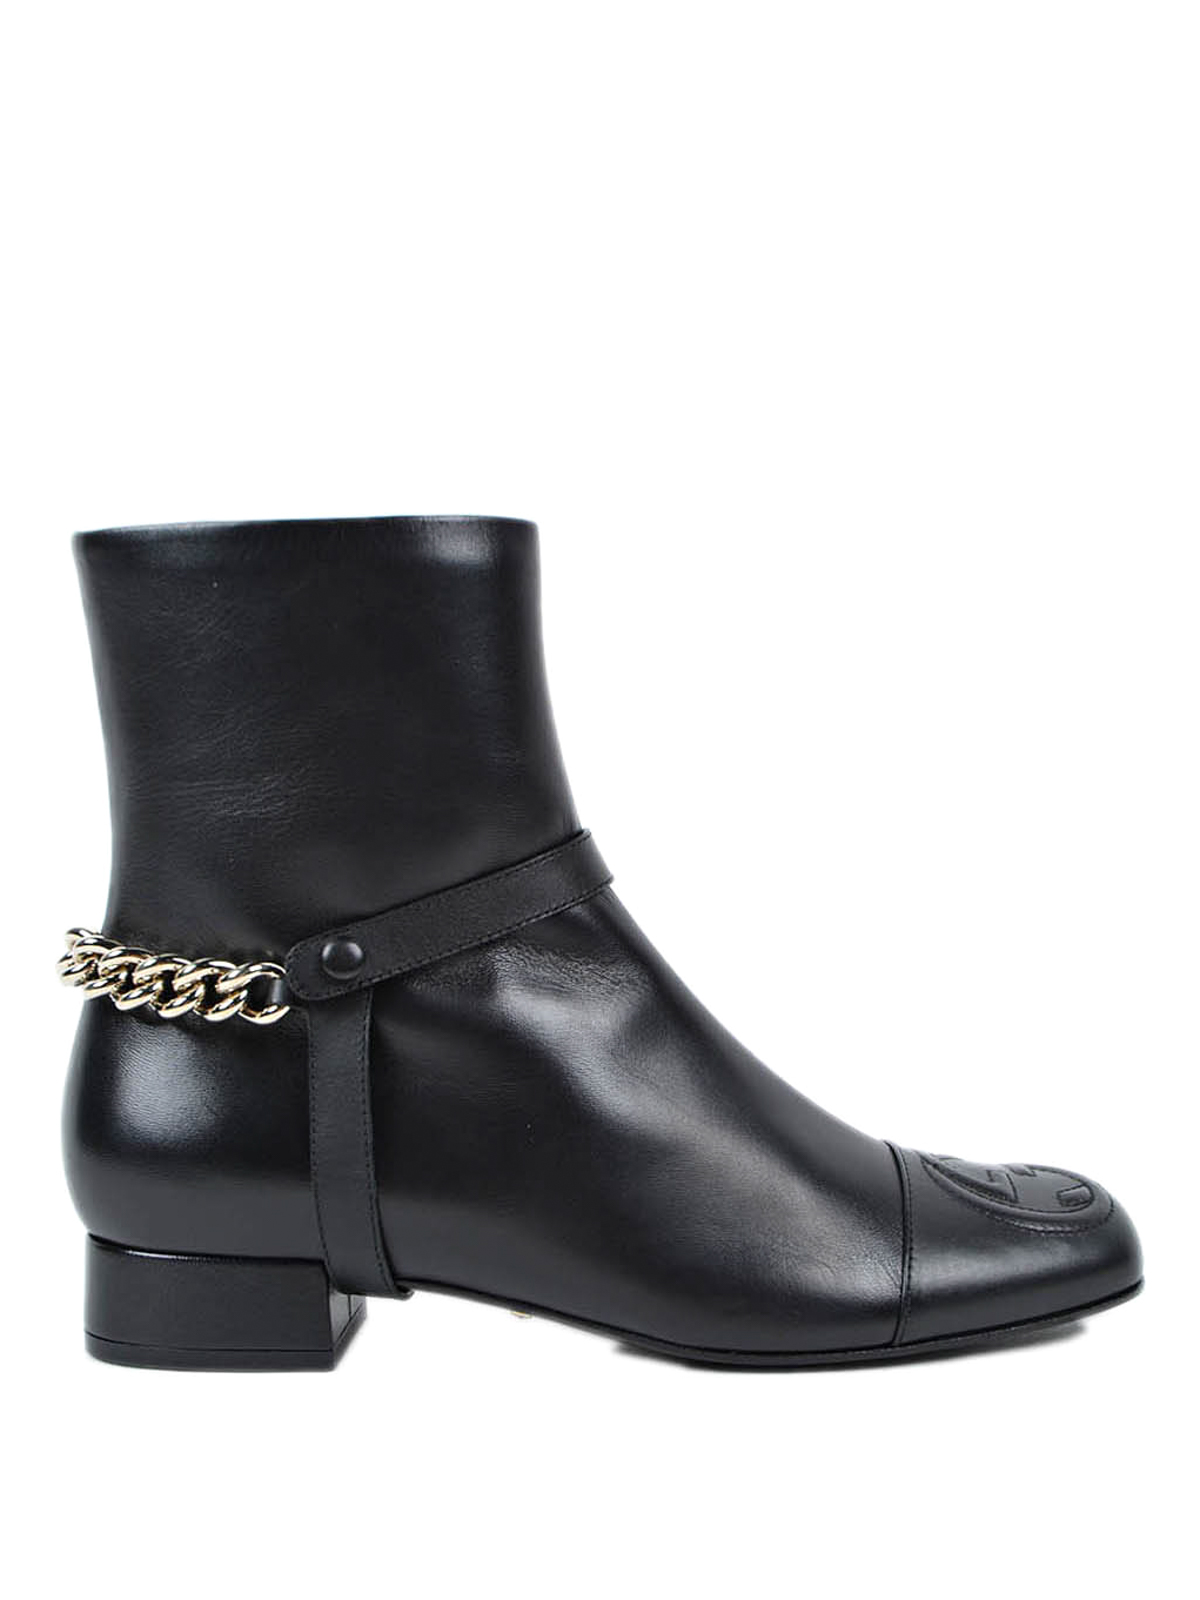 41d598c61fb9 Gucci - Soho ankle boots - ankle boots - 388454 AEMP0 1000